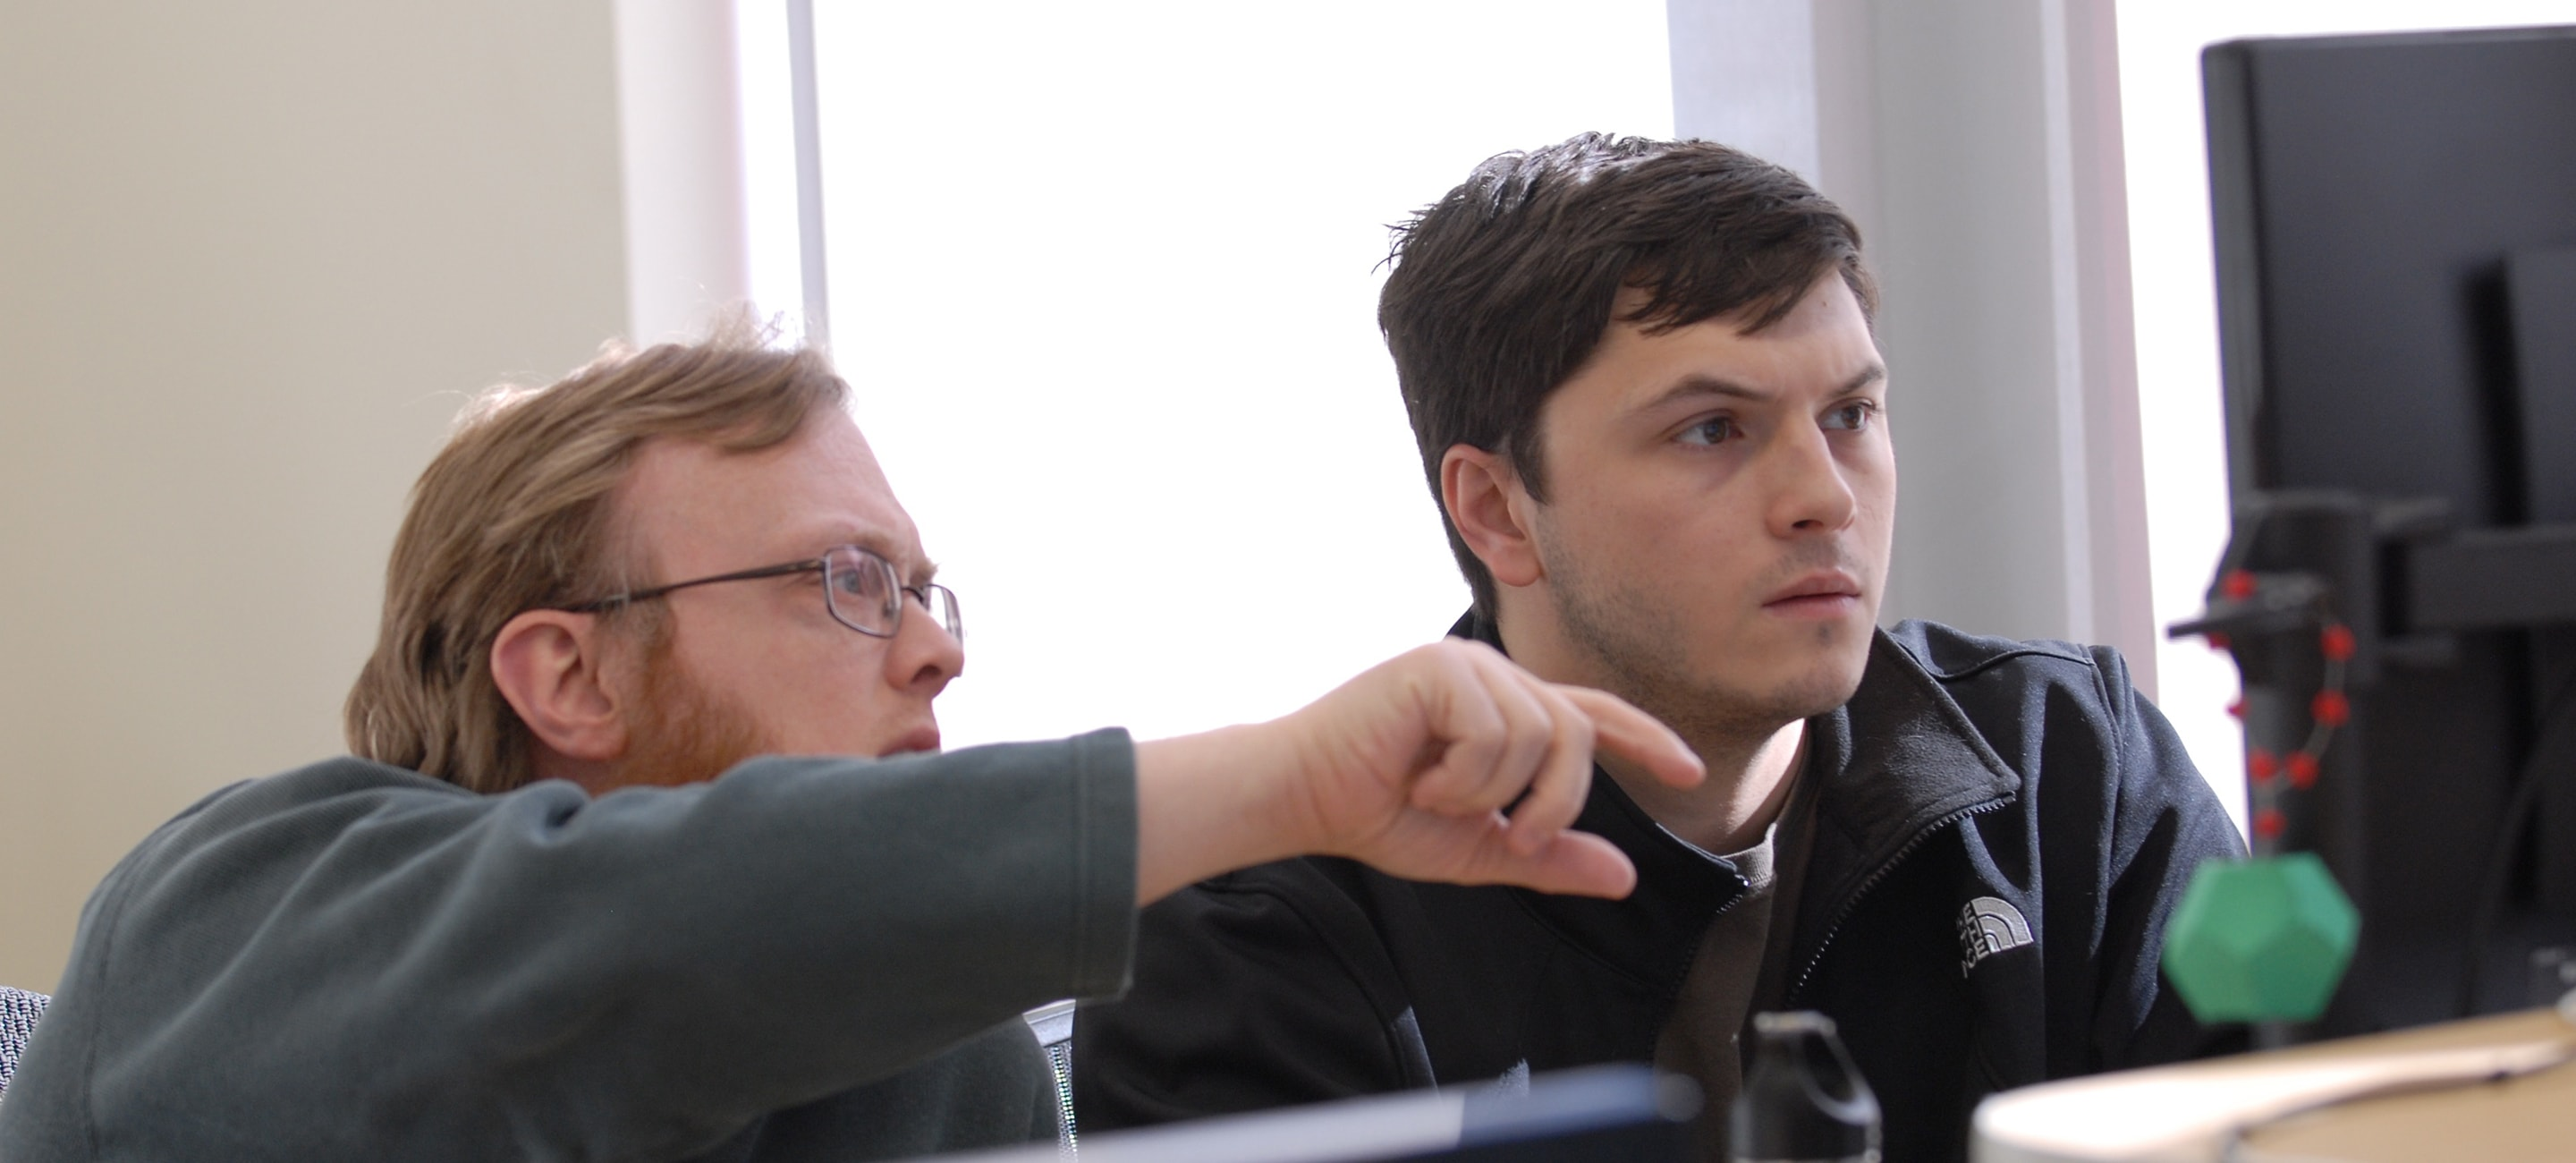 Engineers discussing implementation